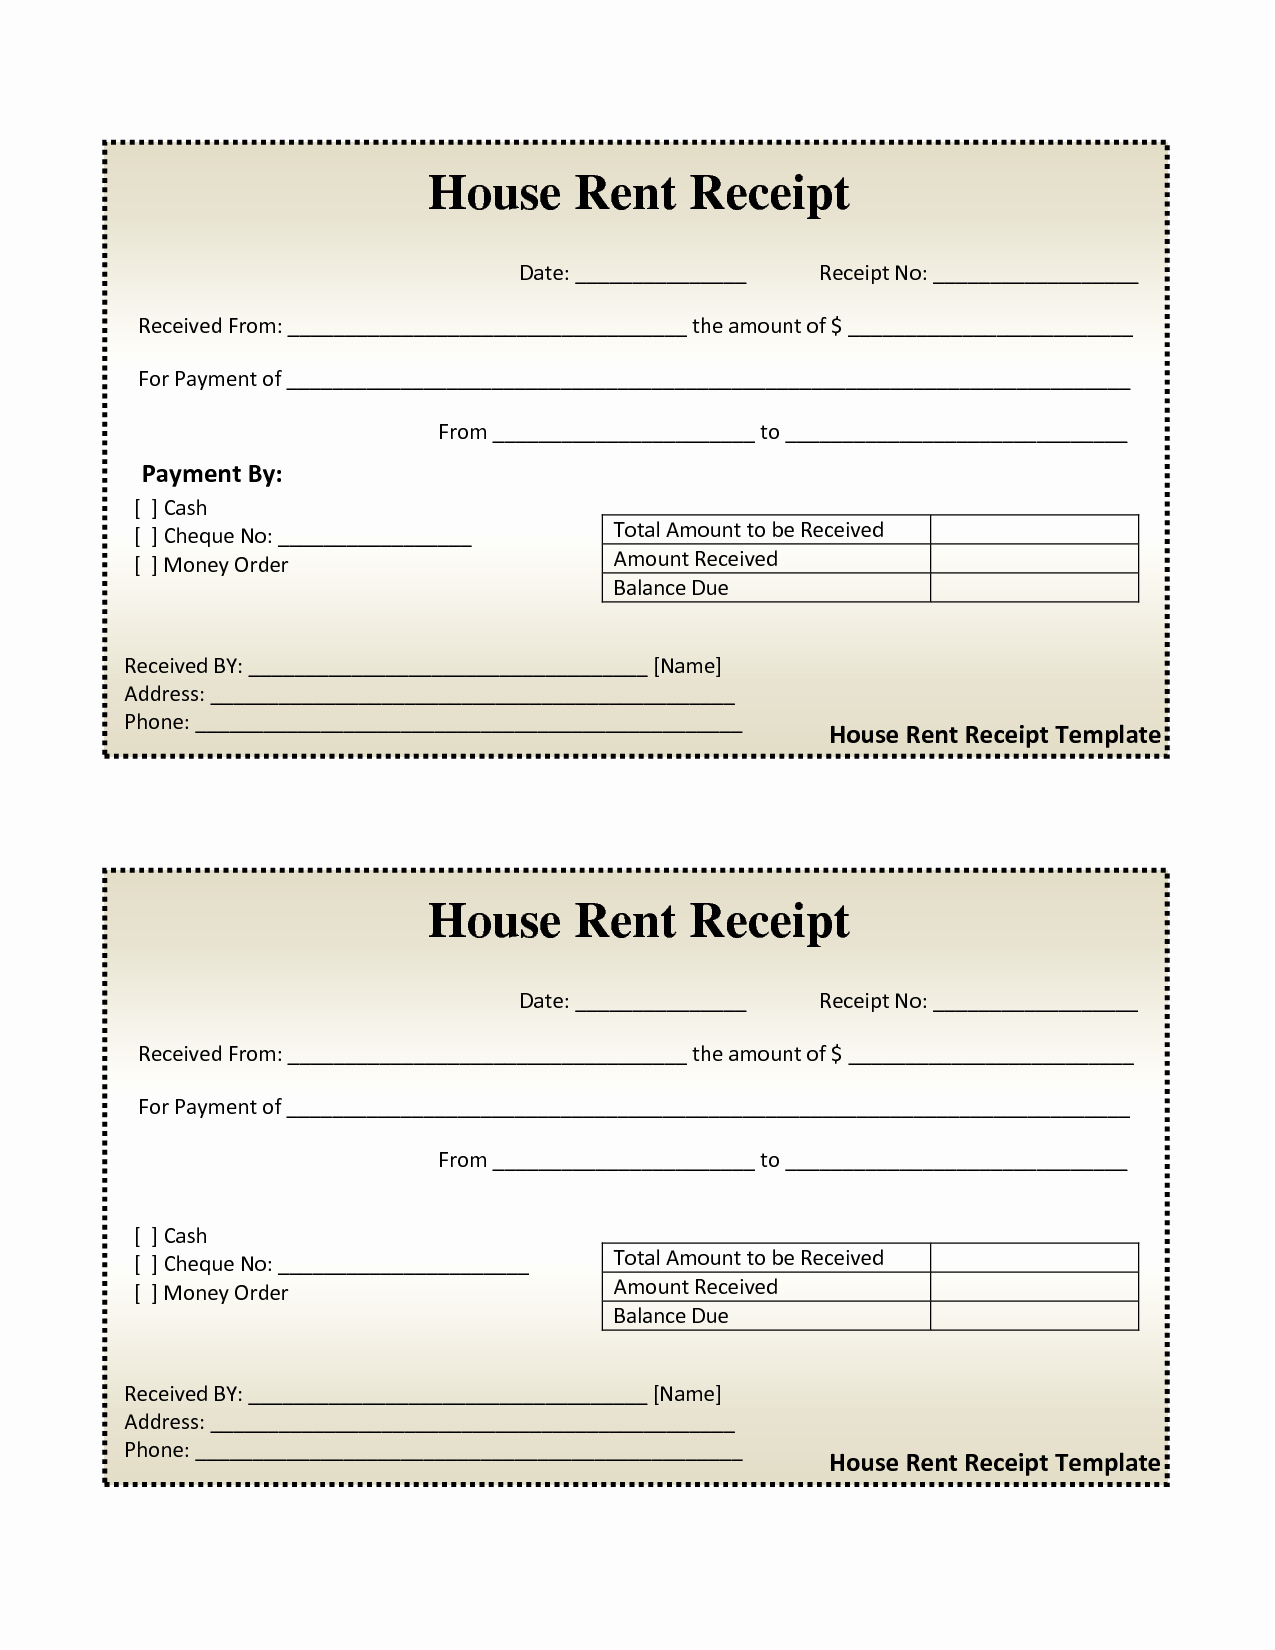 Rent Invoice Template Free Luxury Free House Rental Invoice